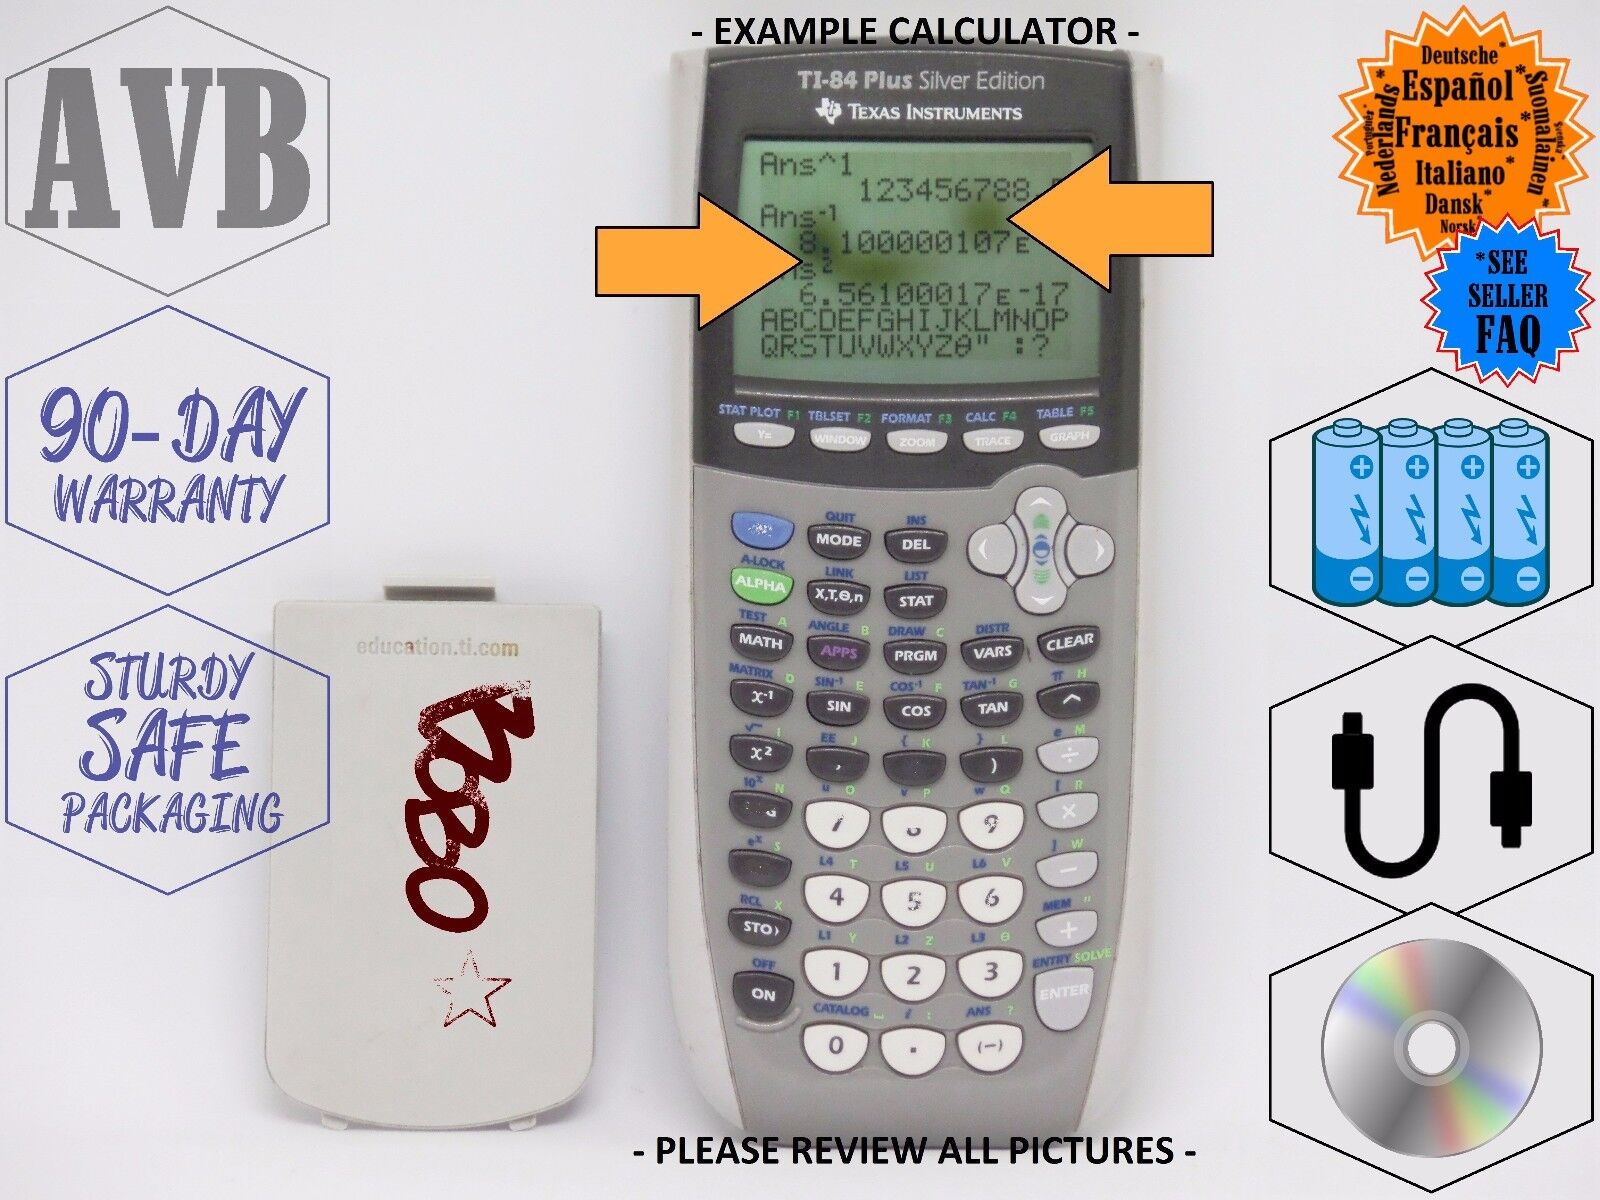 Texas Instruments Gray TI-84 Plus SILVER EDITION Graphing Calculator!! - College